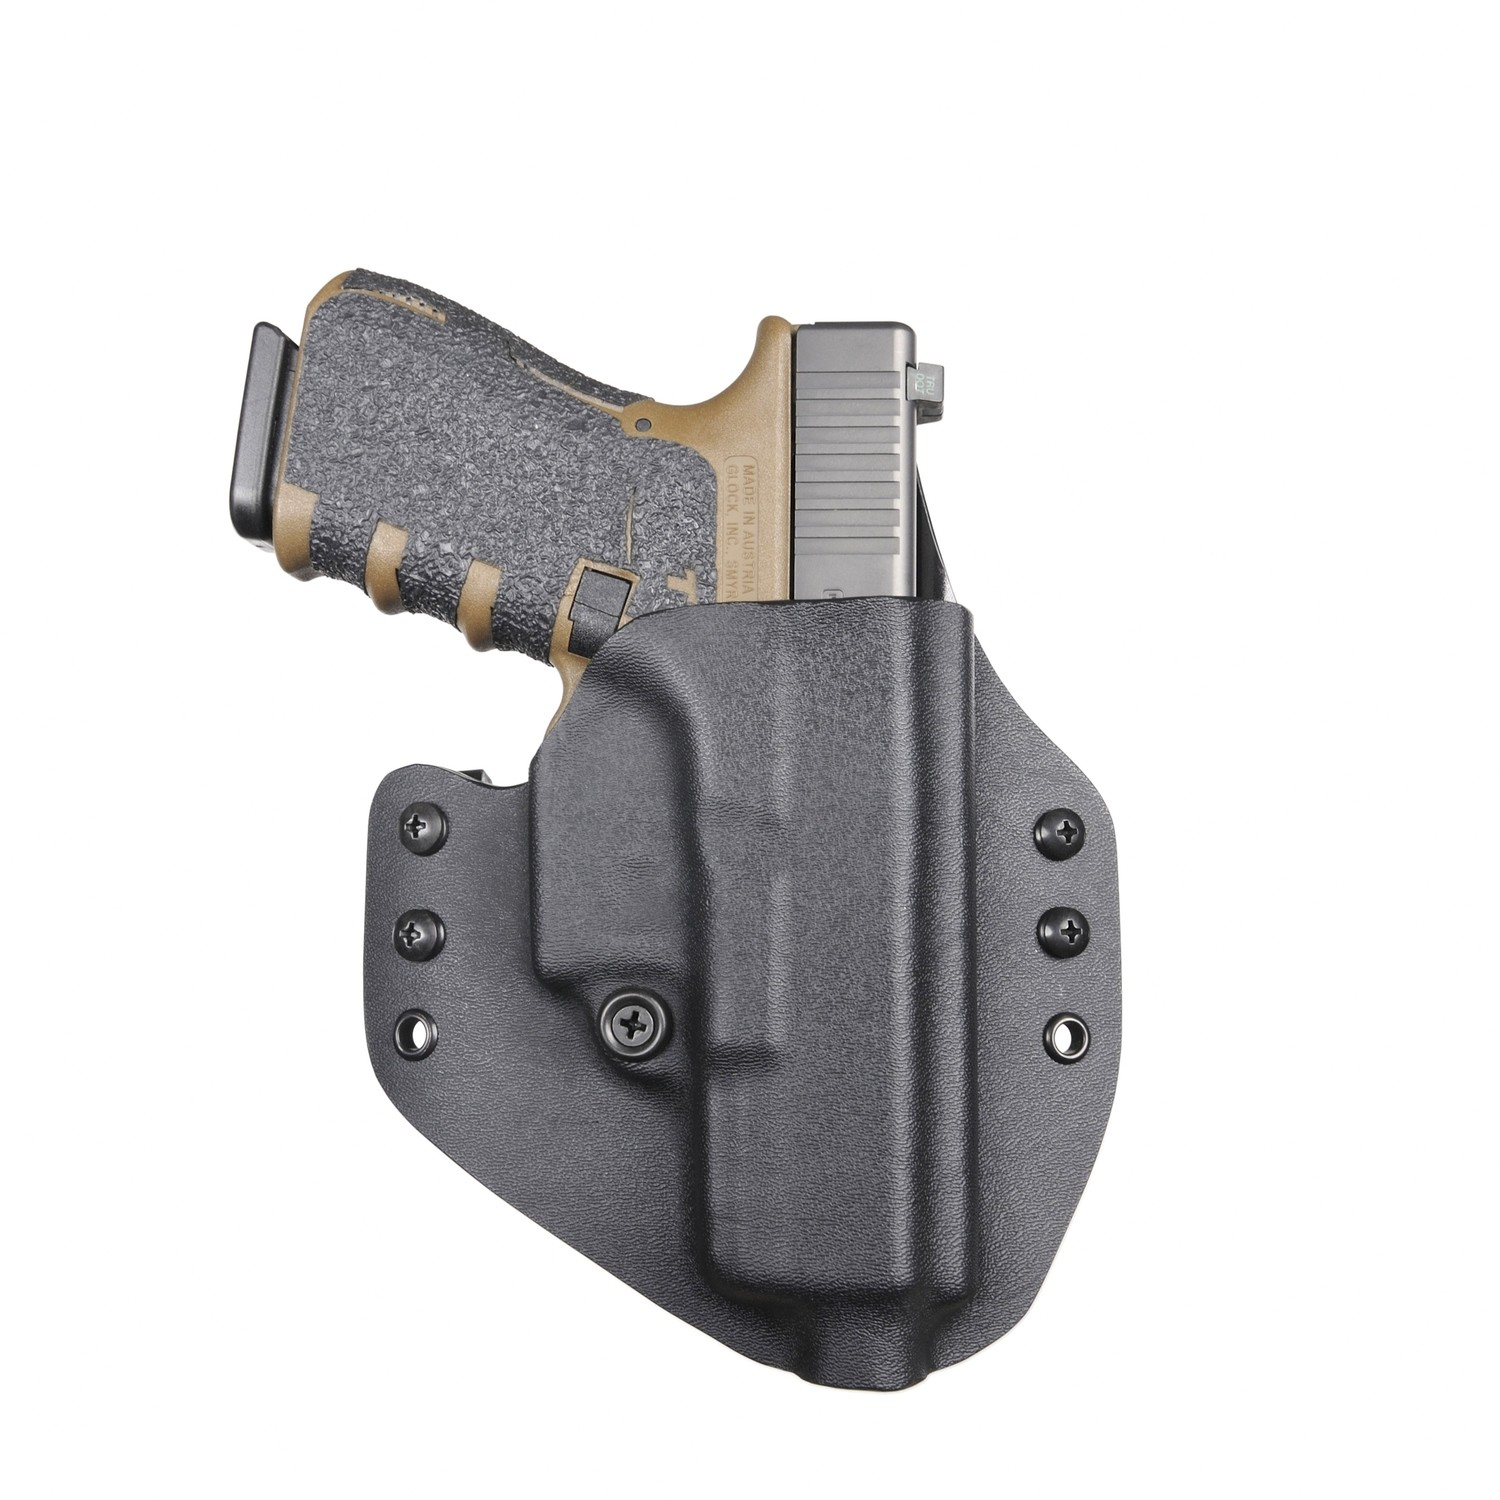 Walther Custom Outside Waist Band (OWB) Holster